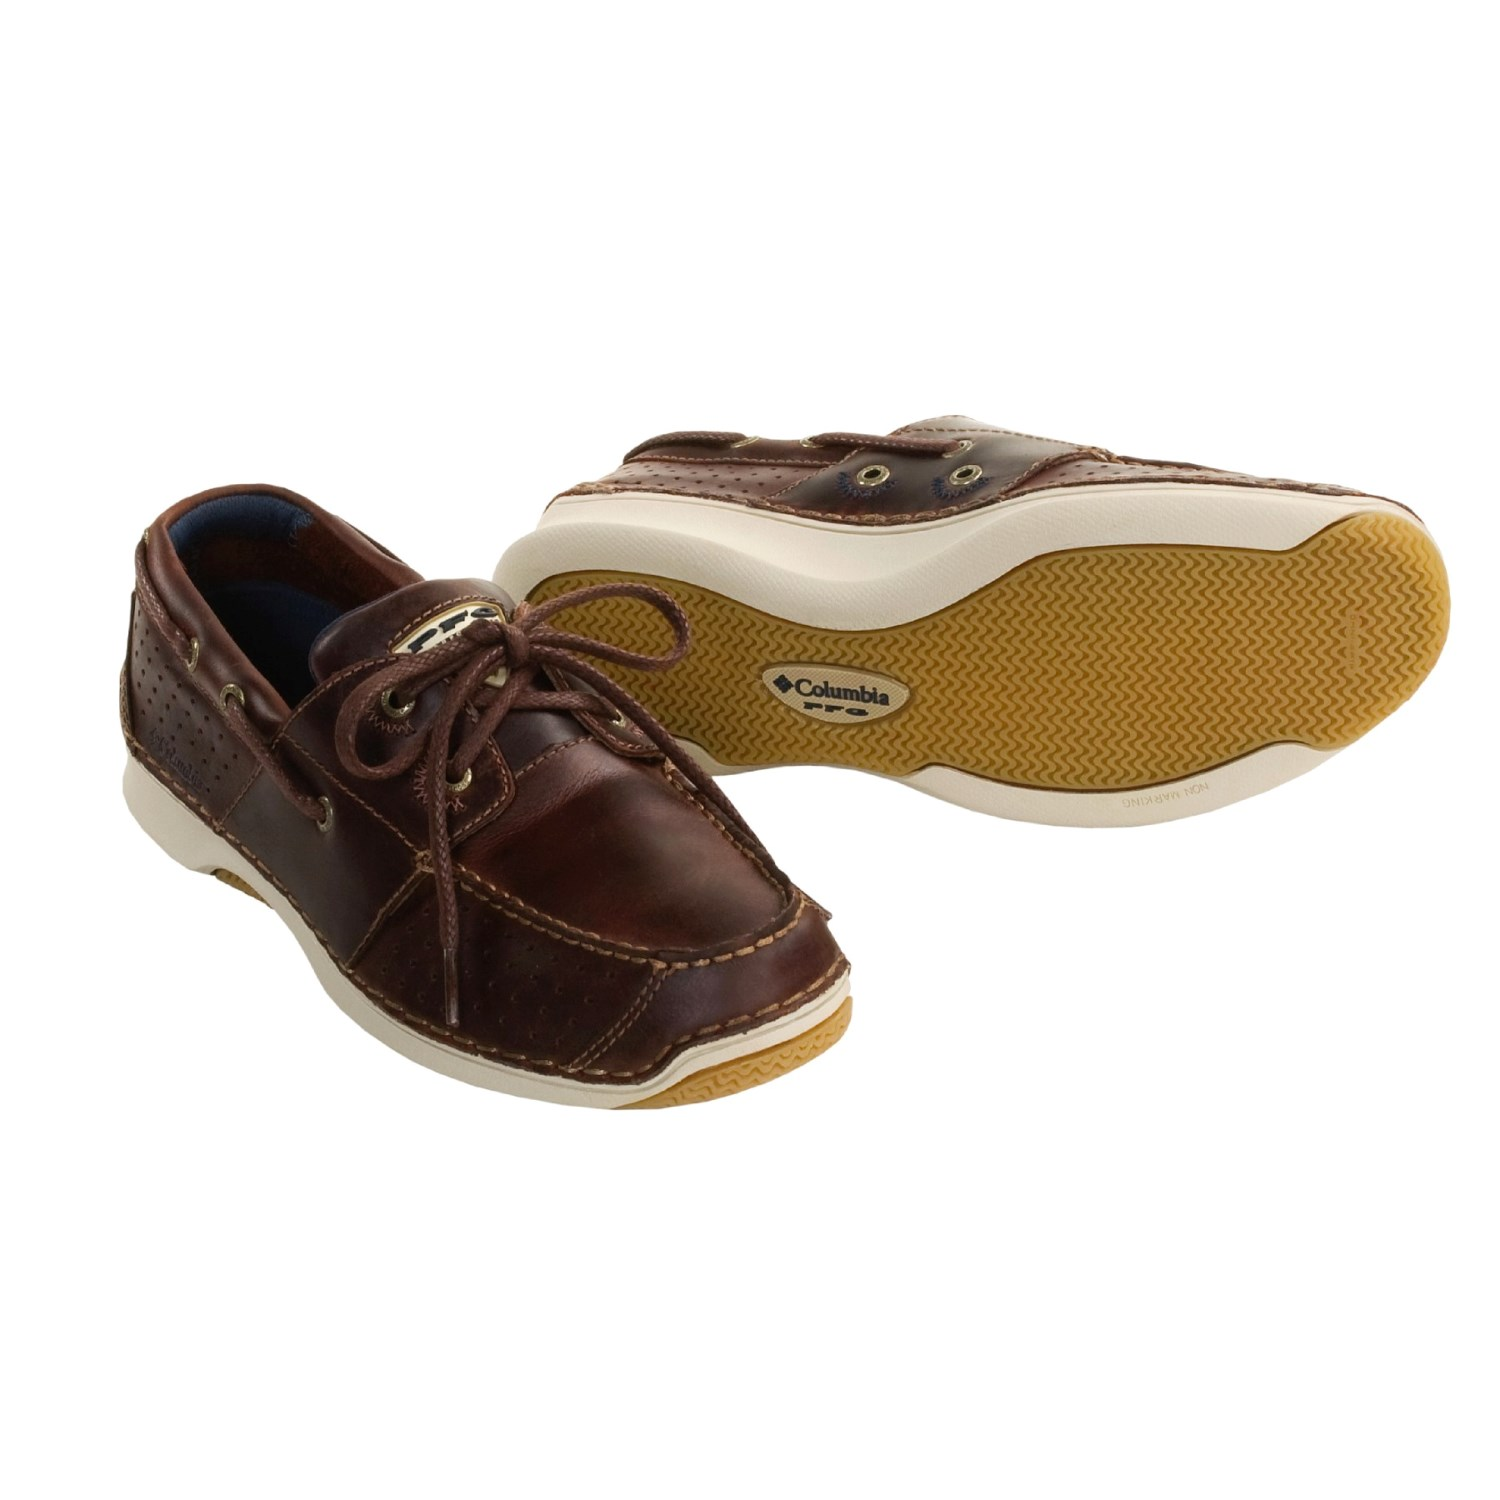 Columbia footwear pfg redfish boat shoes for men 1744h for Columbia fishing shoes